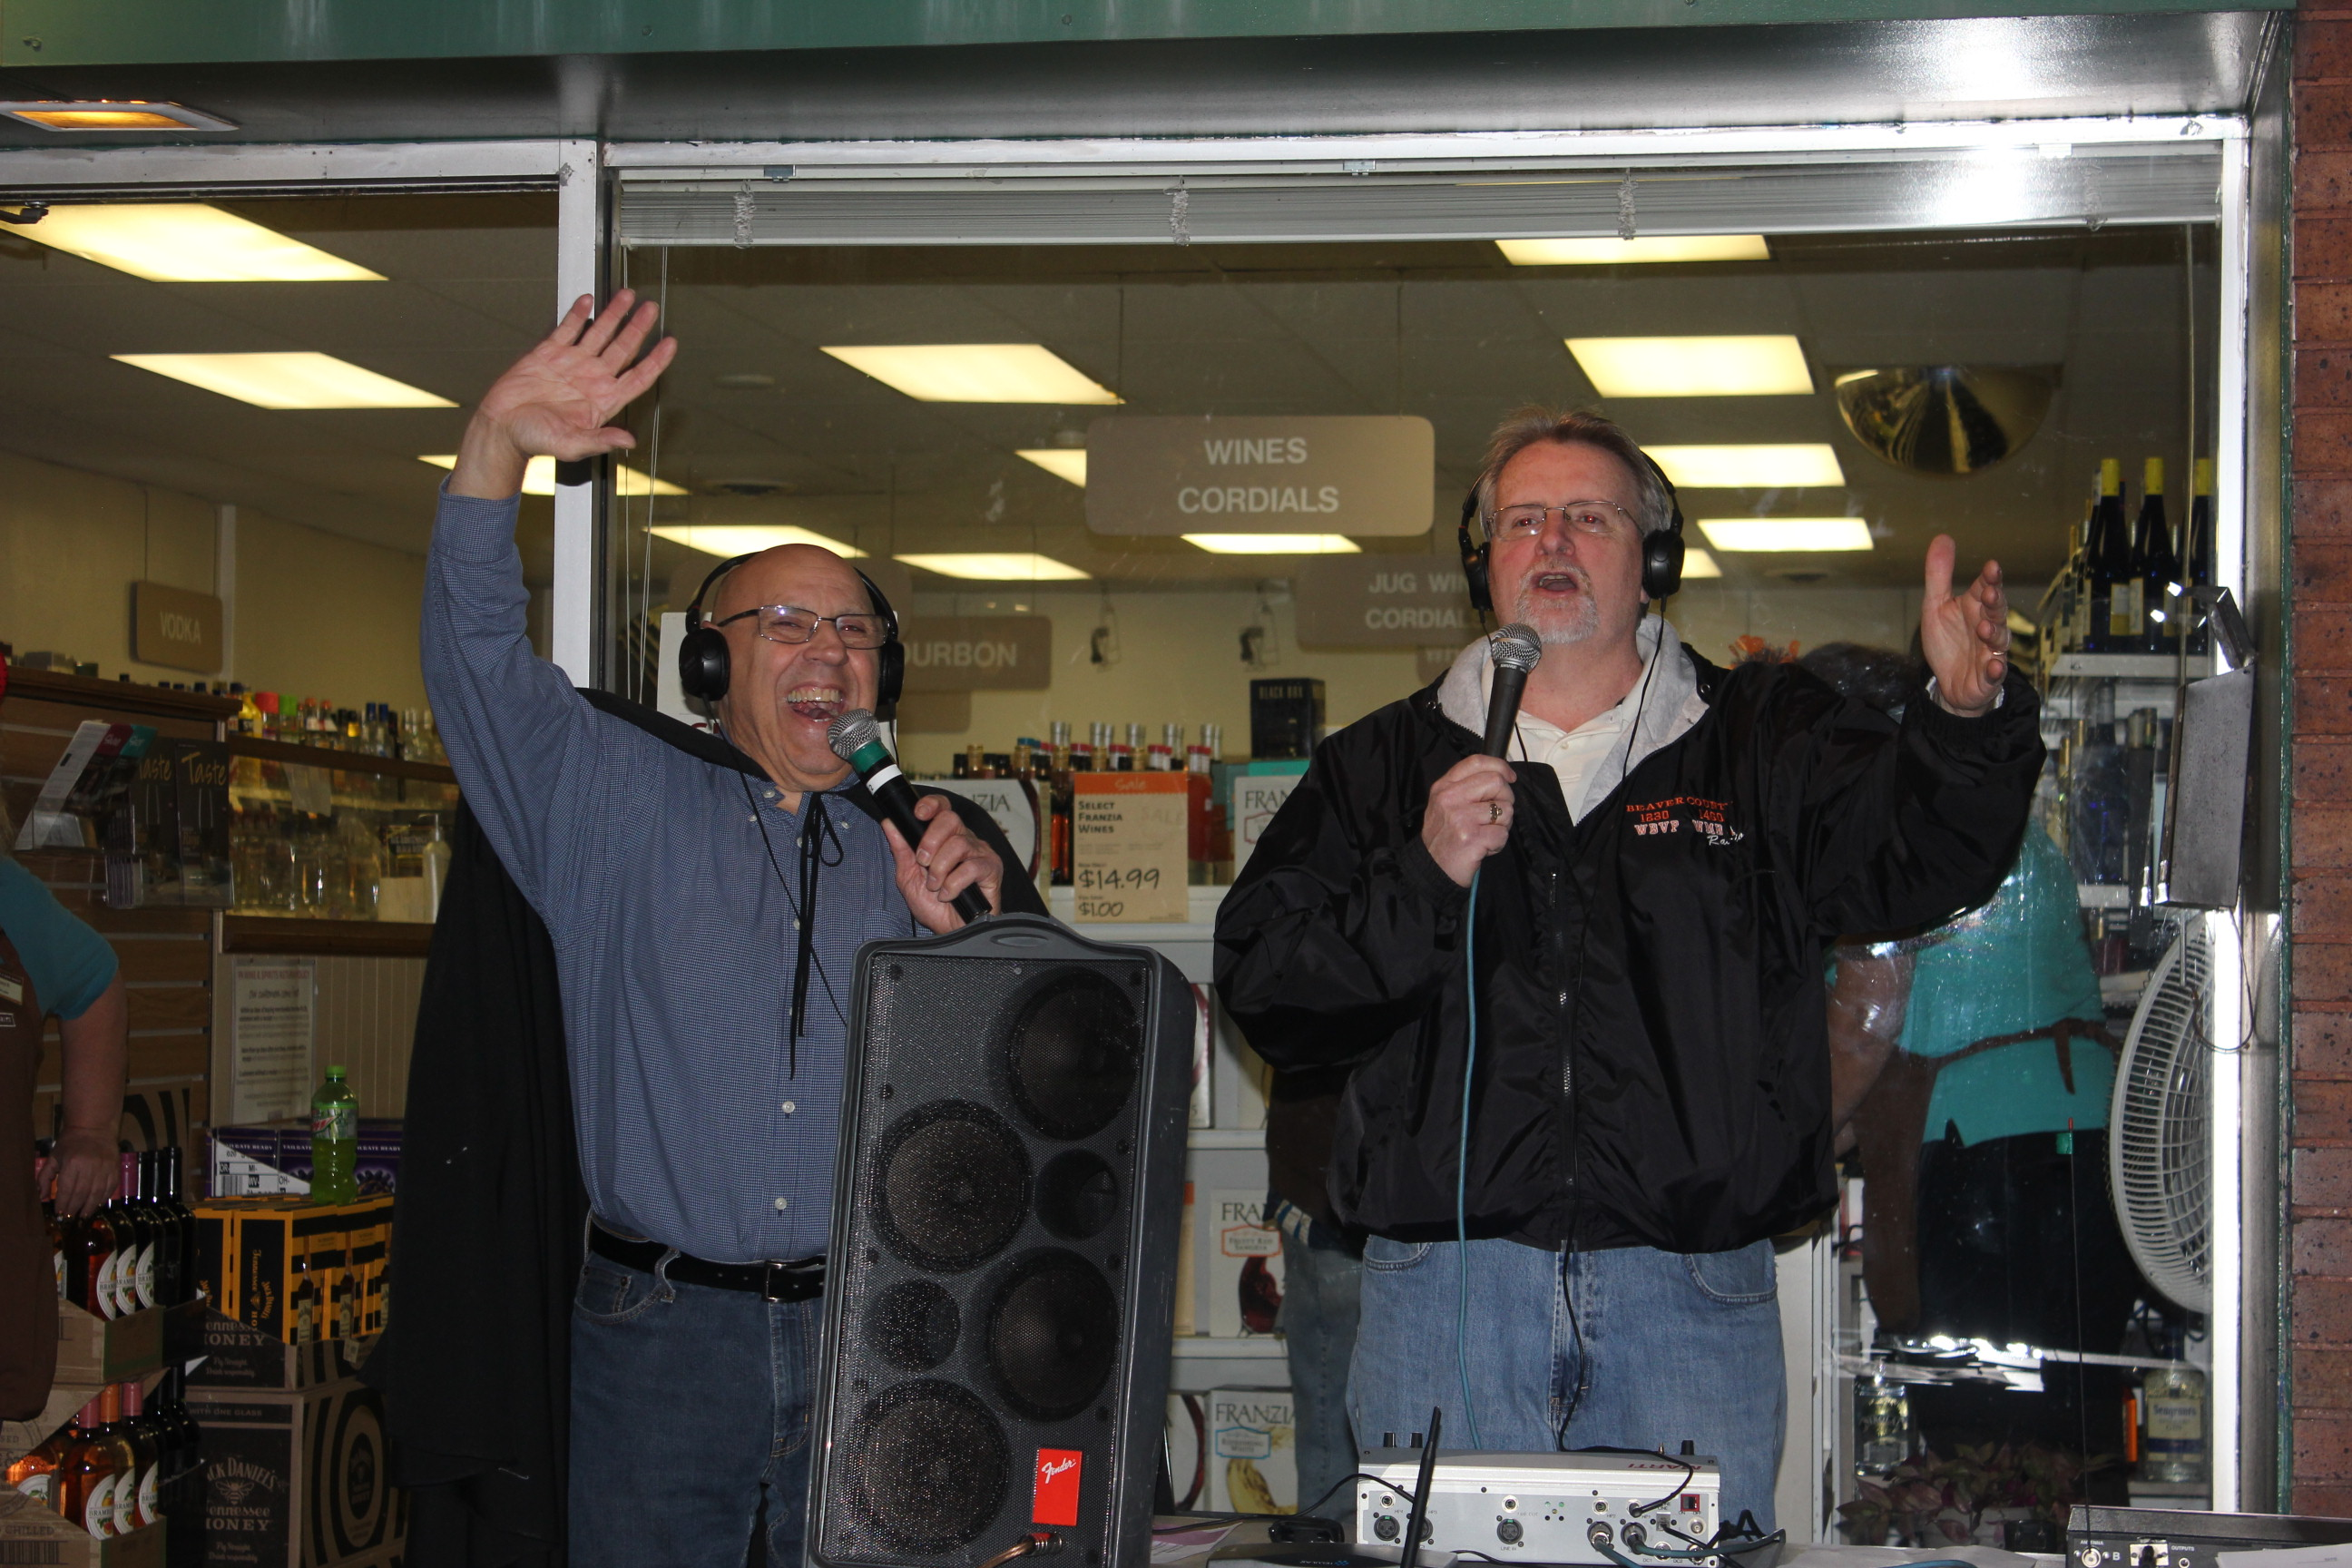 Ed nad Mike Live on WBVP and WMBA